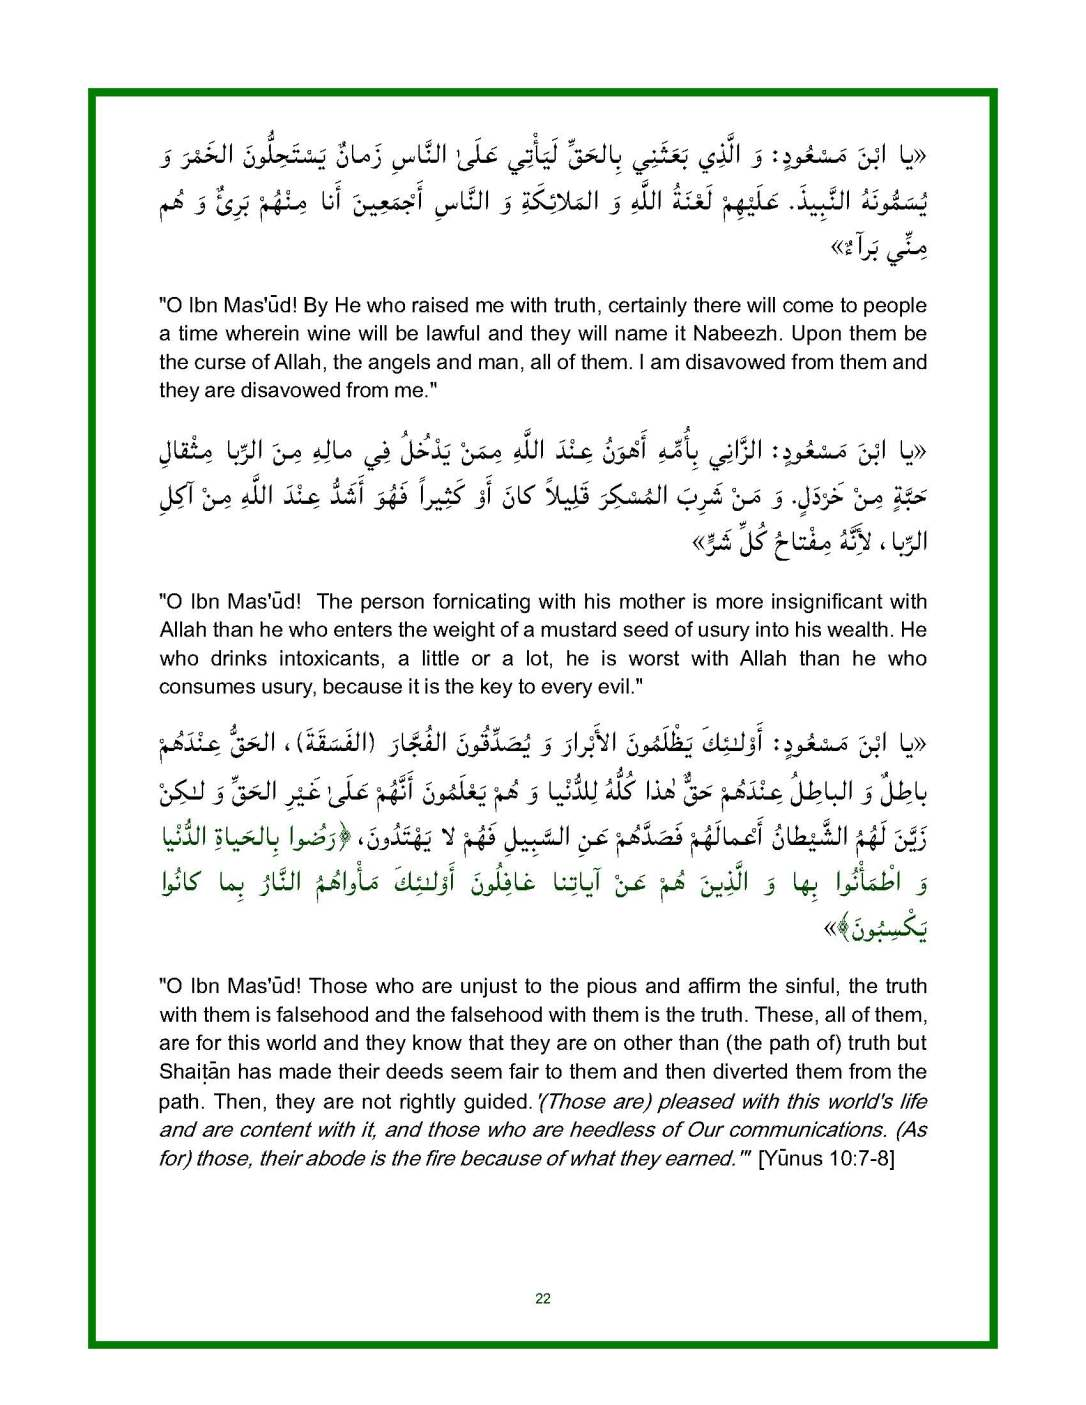 Spiritual-Advice-of-the-Messenger-of-Allah-for-Ibn-Masud-unlocked_Page_22